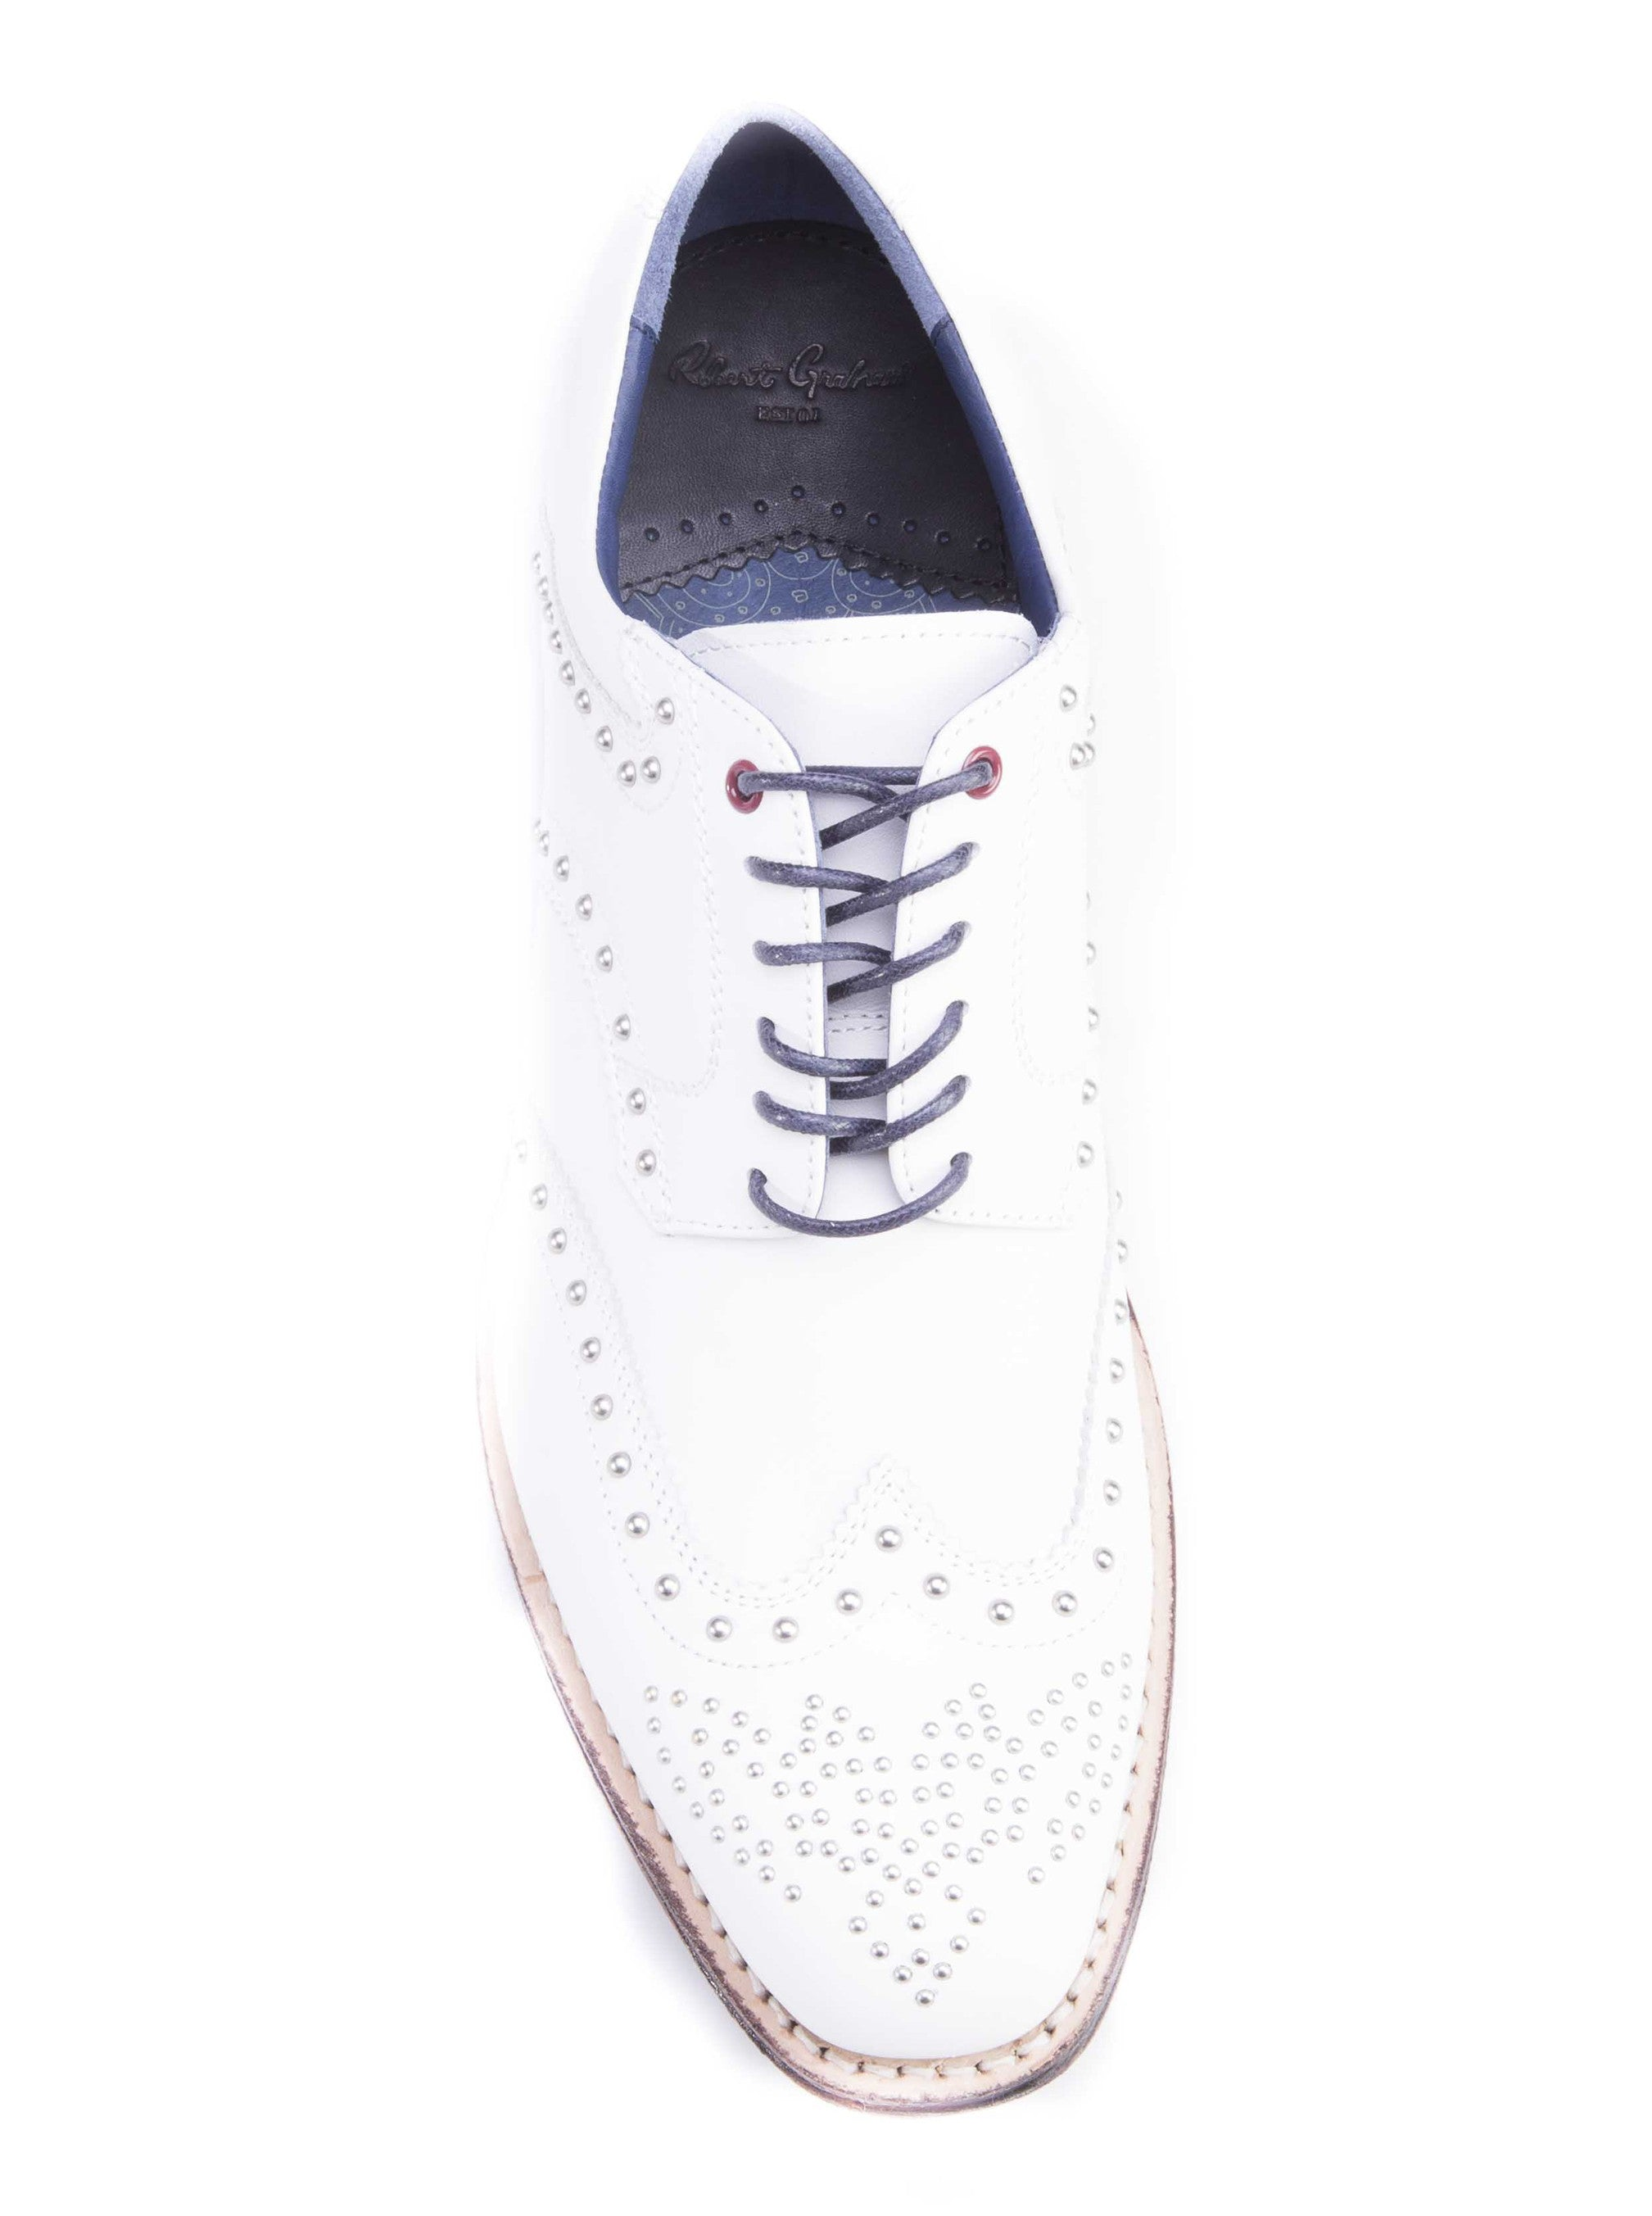 LIMITED EDITION STUDDED GOLF SHOE